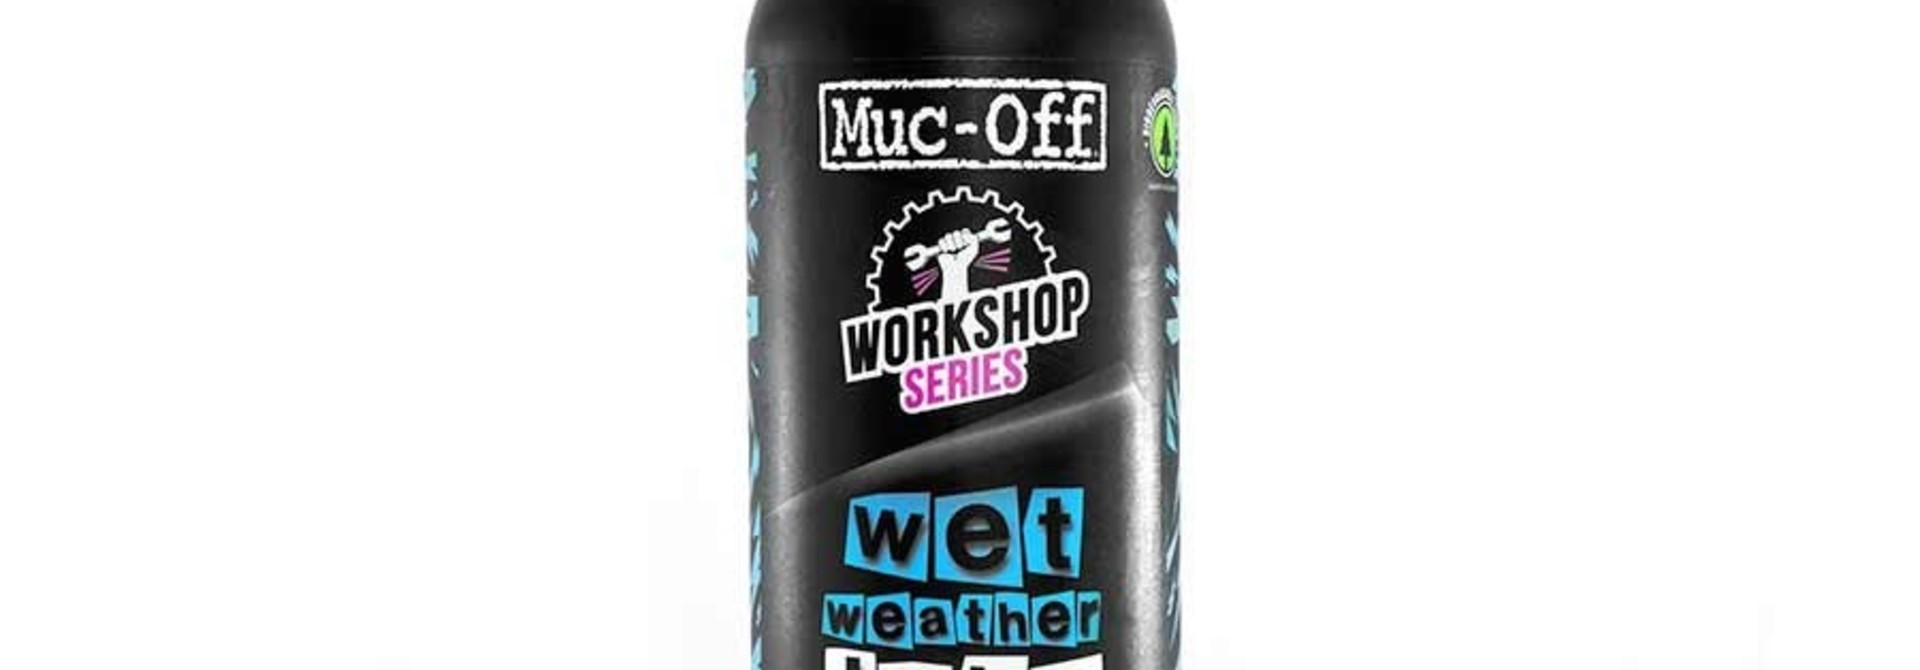 Muc-Off, Wet, Lubricant, 1L